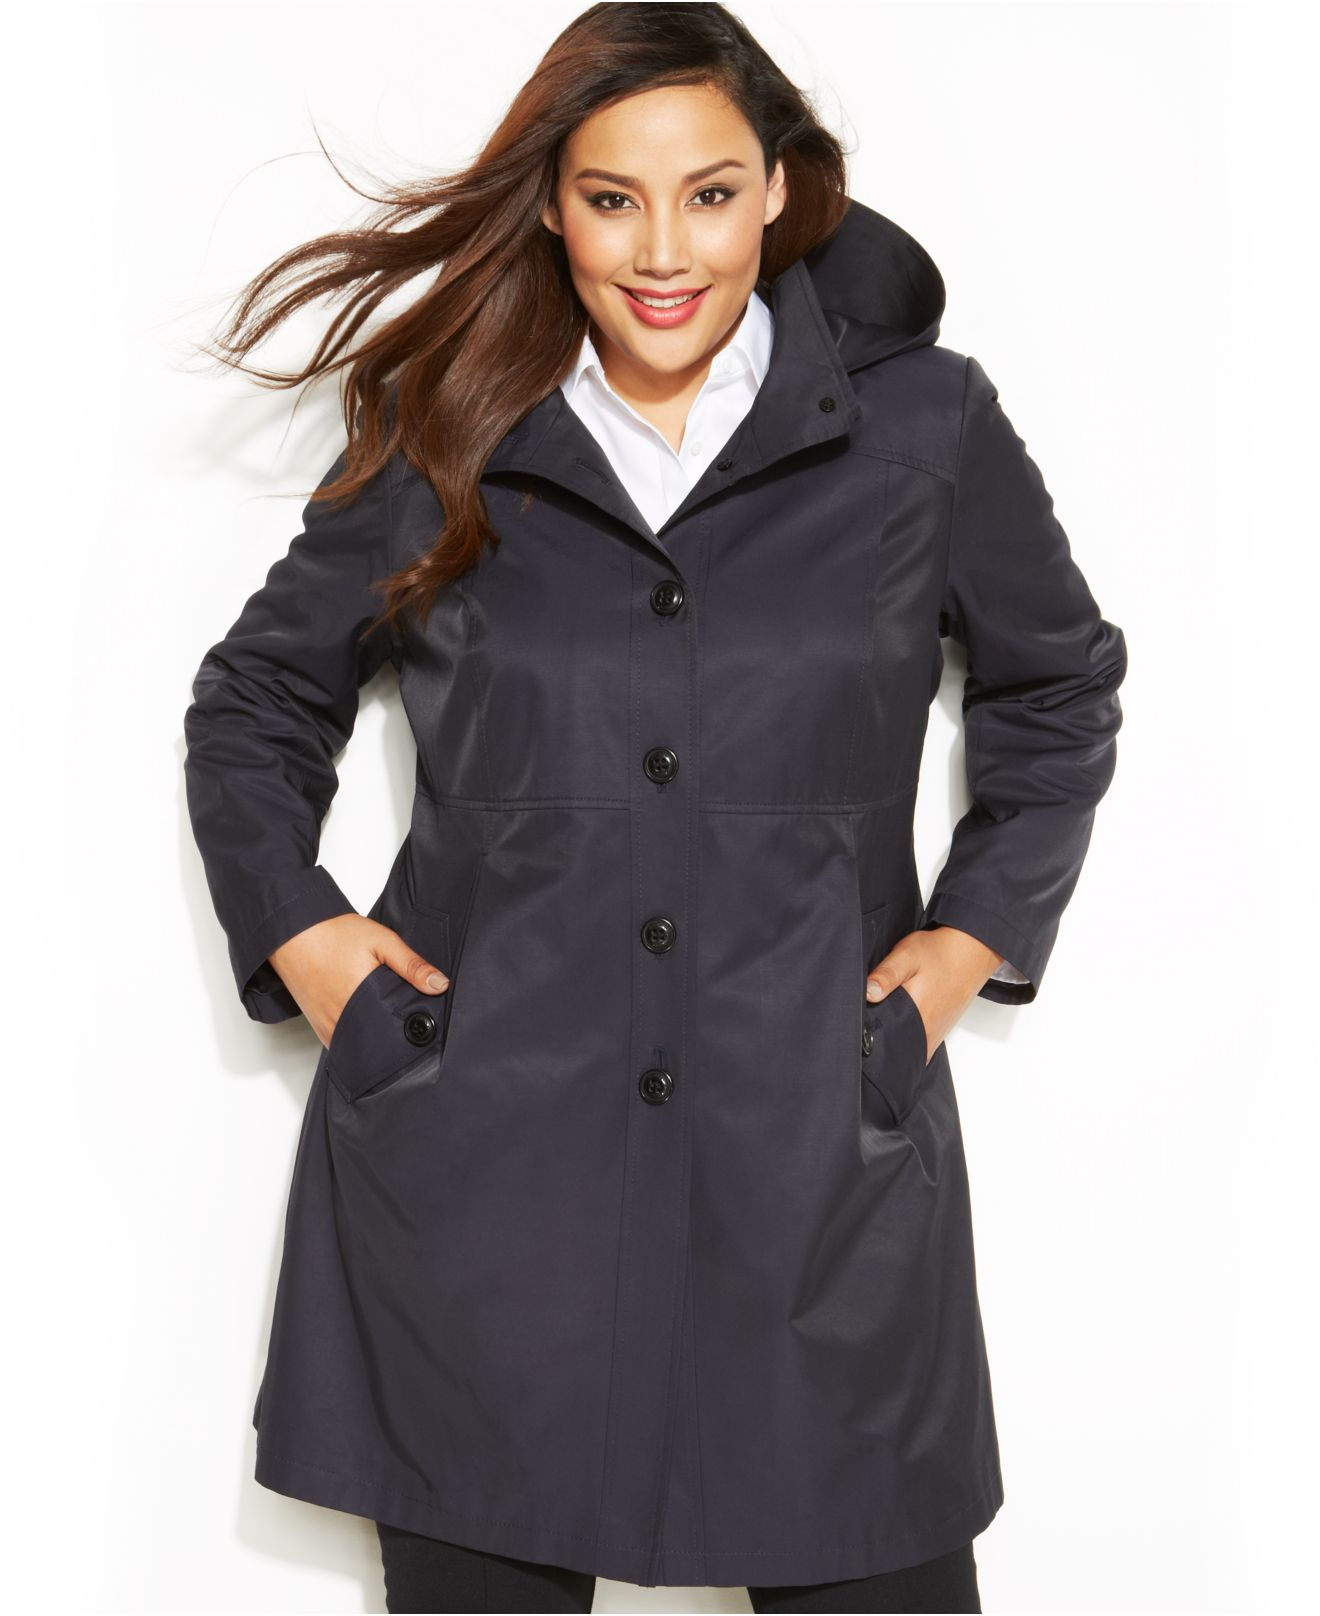 ce95ac5aedf Lyst - DKNY Plus Size Single-Breasted Hooded Raincoat in Blue